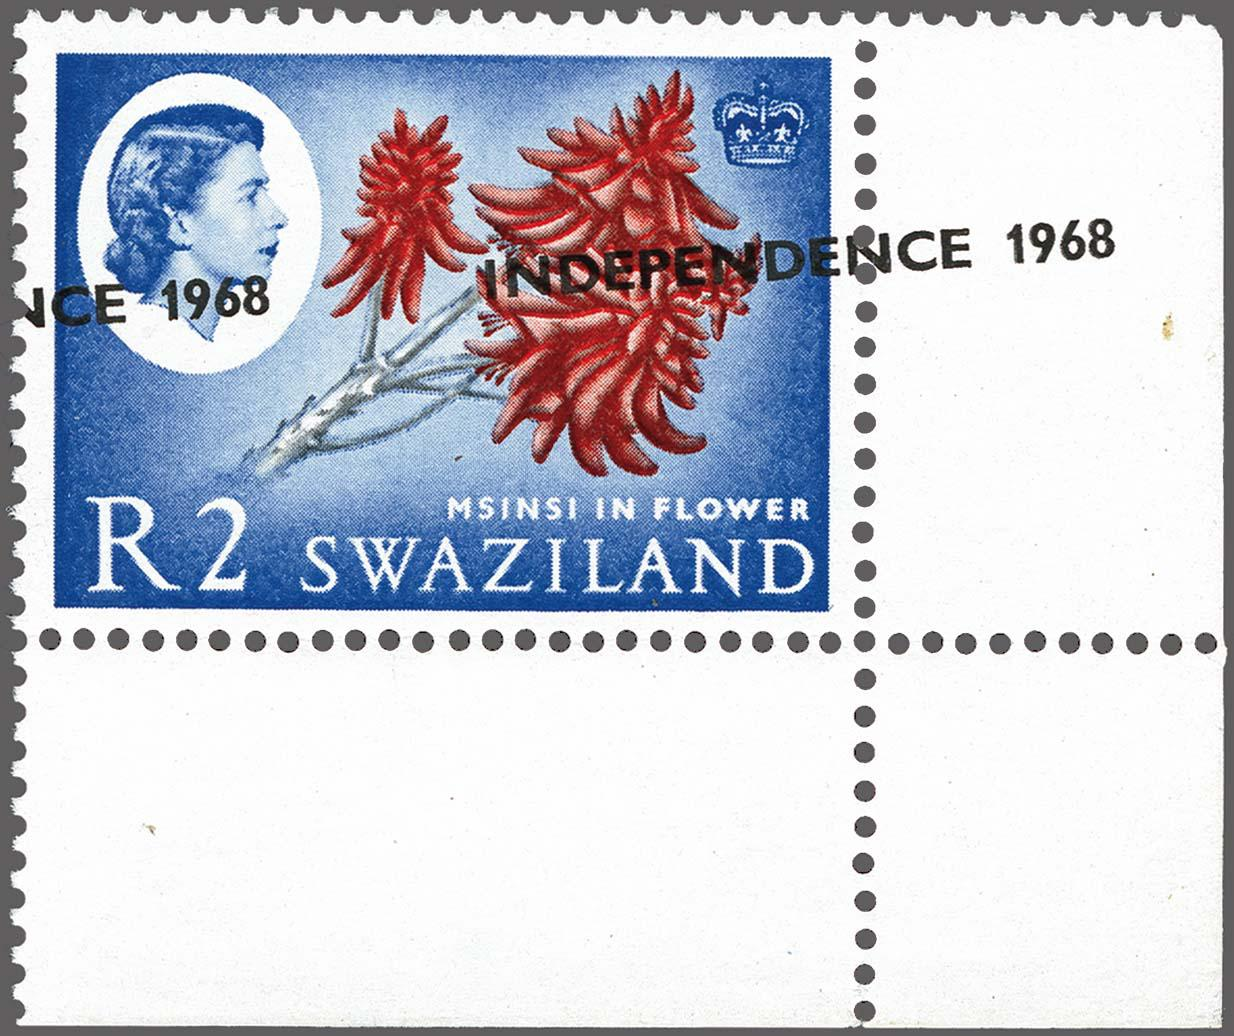 Lot 196 - Great Britain and former colonies swaziland -  Corinphila Veilingen Auction 250-253 - Day 1 - Foreign countries